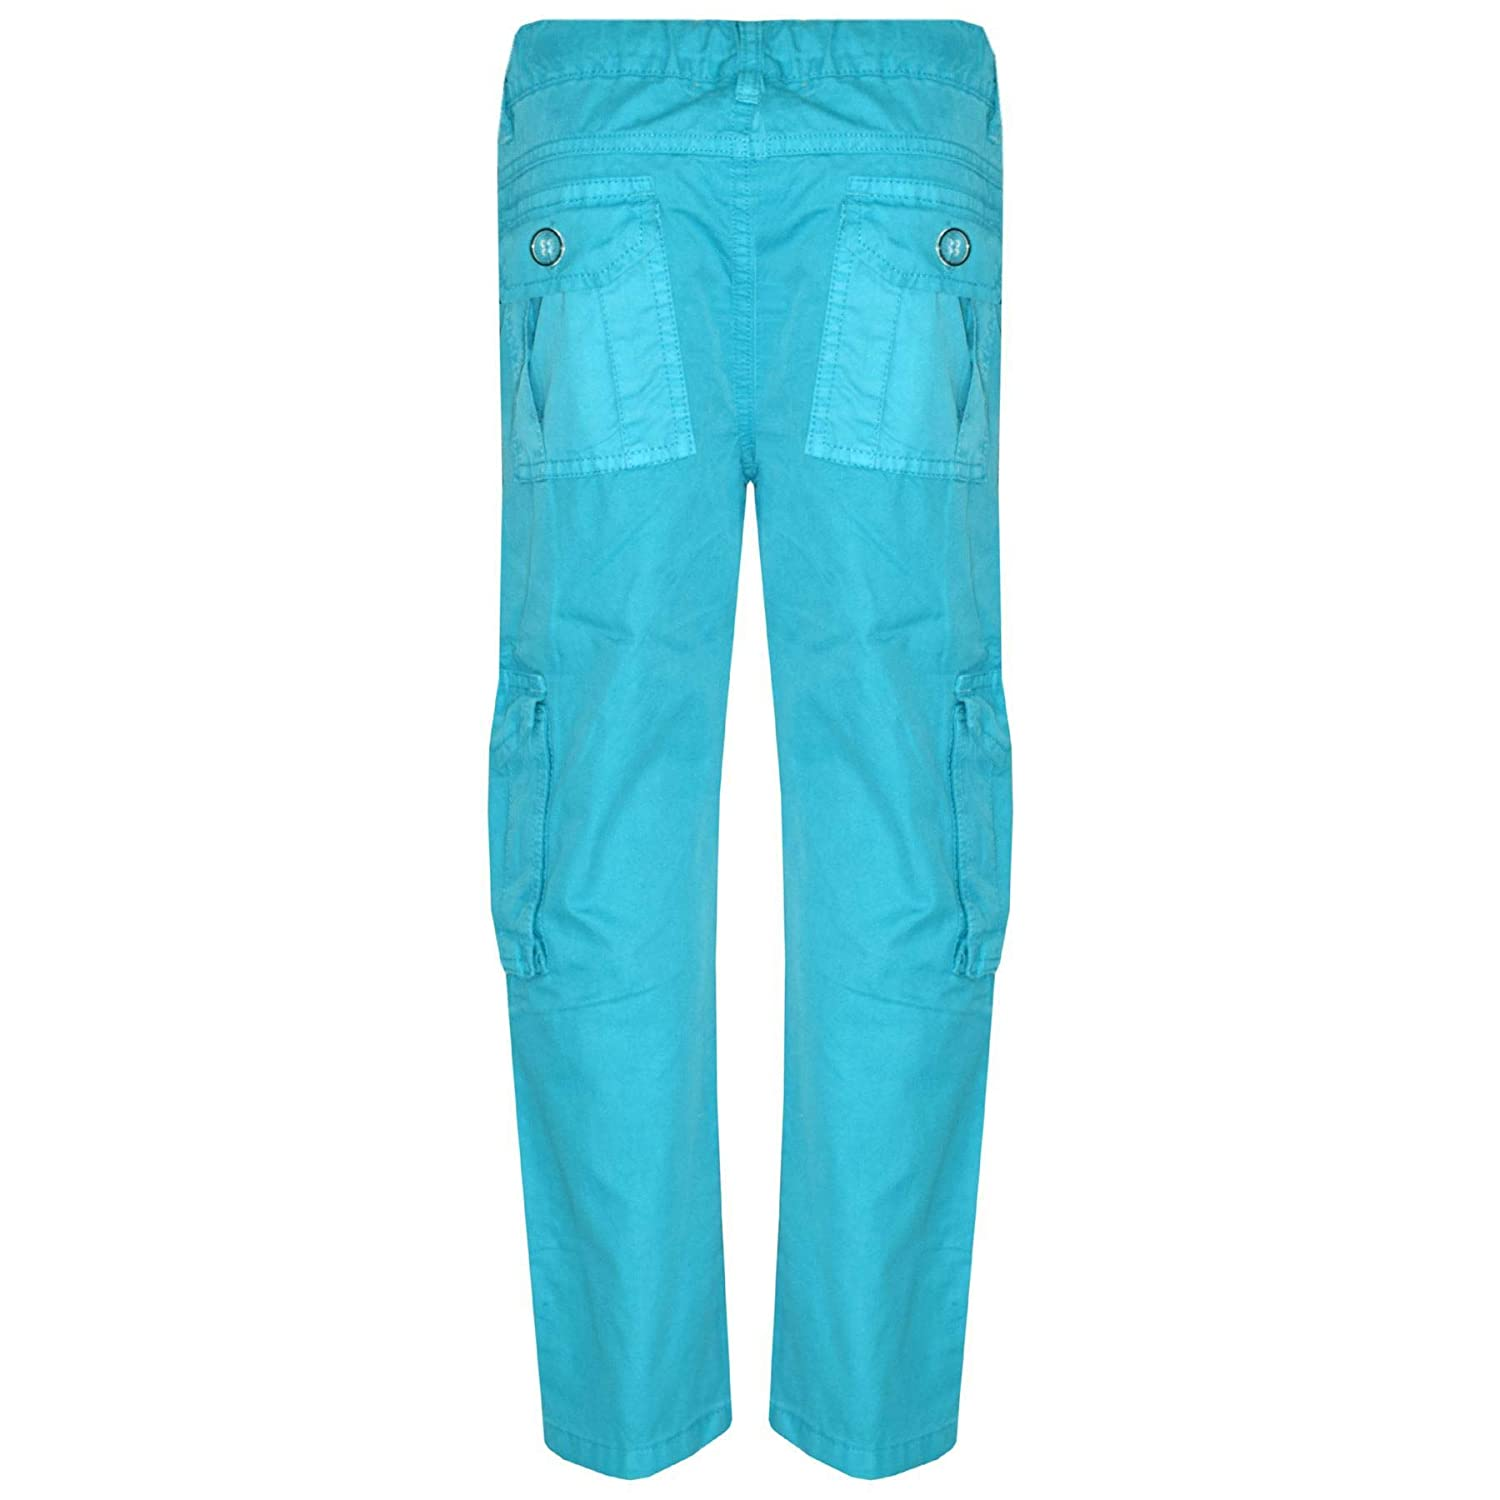 Boys Blue Adventure Denim Combat Cargo Pocket Fashion Jeans Sizes from 2 to 12 Years